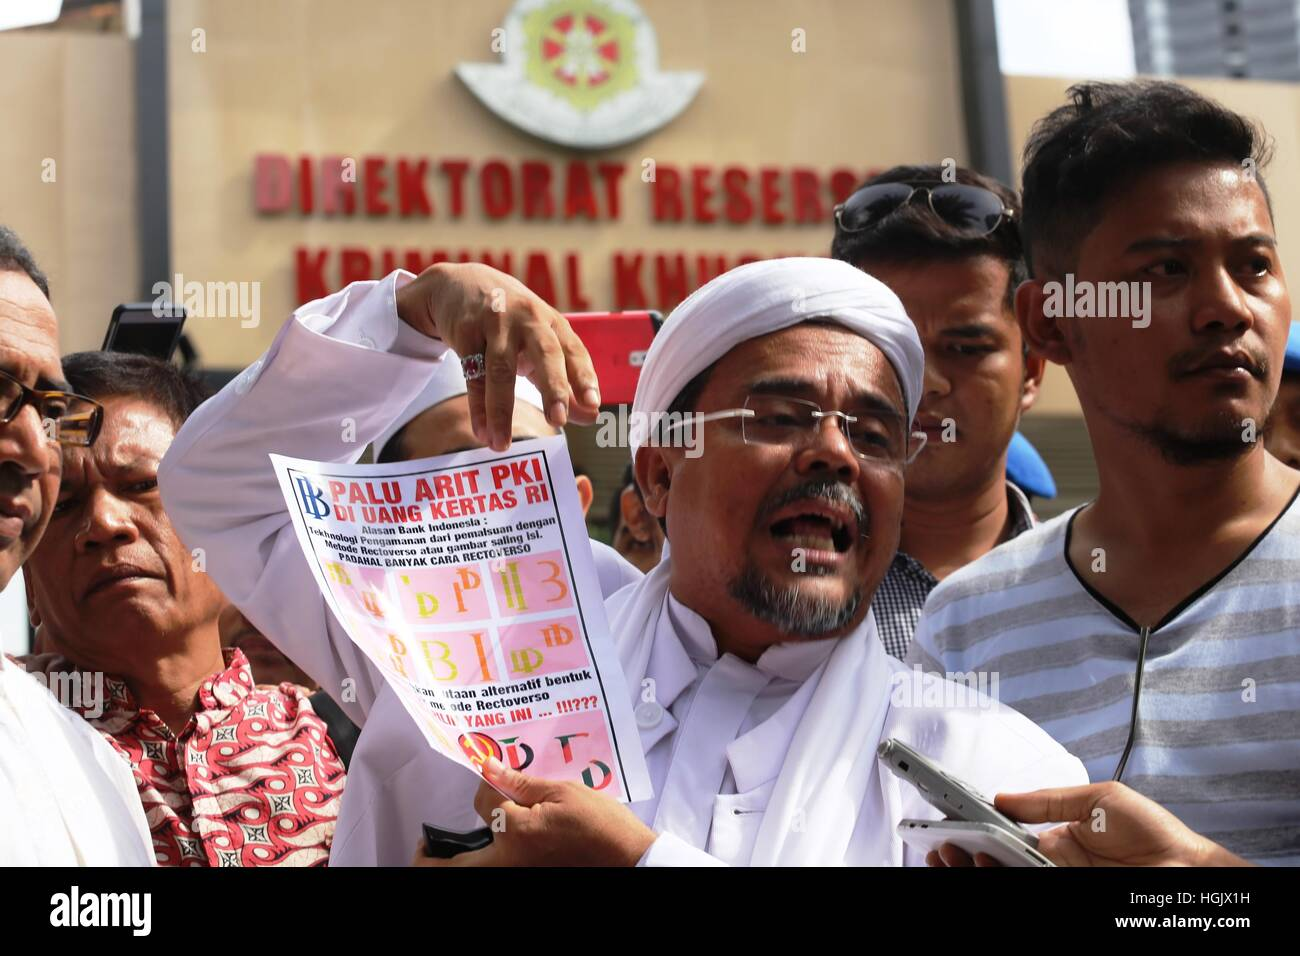 Habib Rizieq Shihab High Resolution Stock Photography And Images Alamy